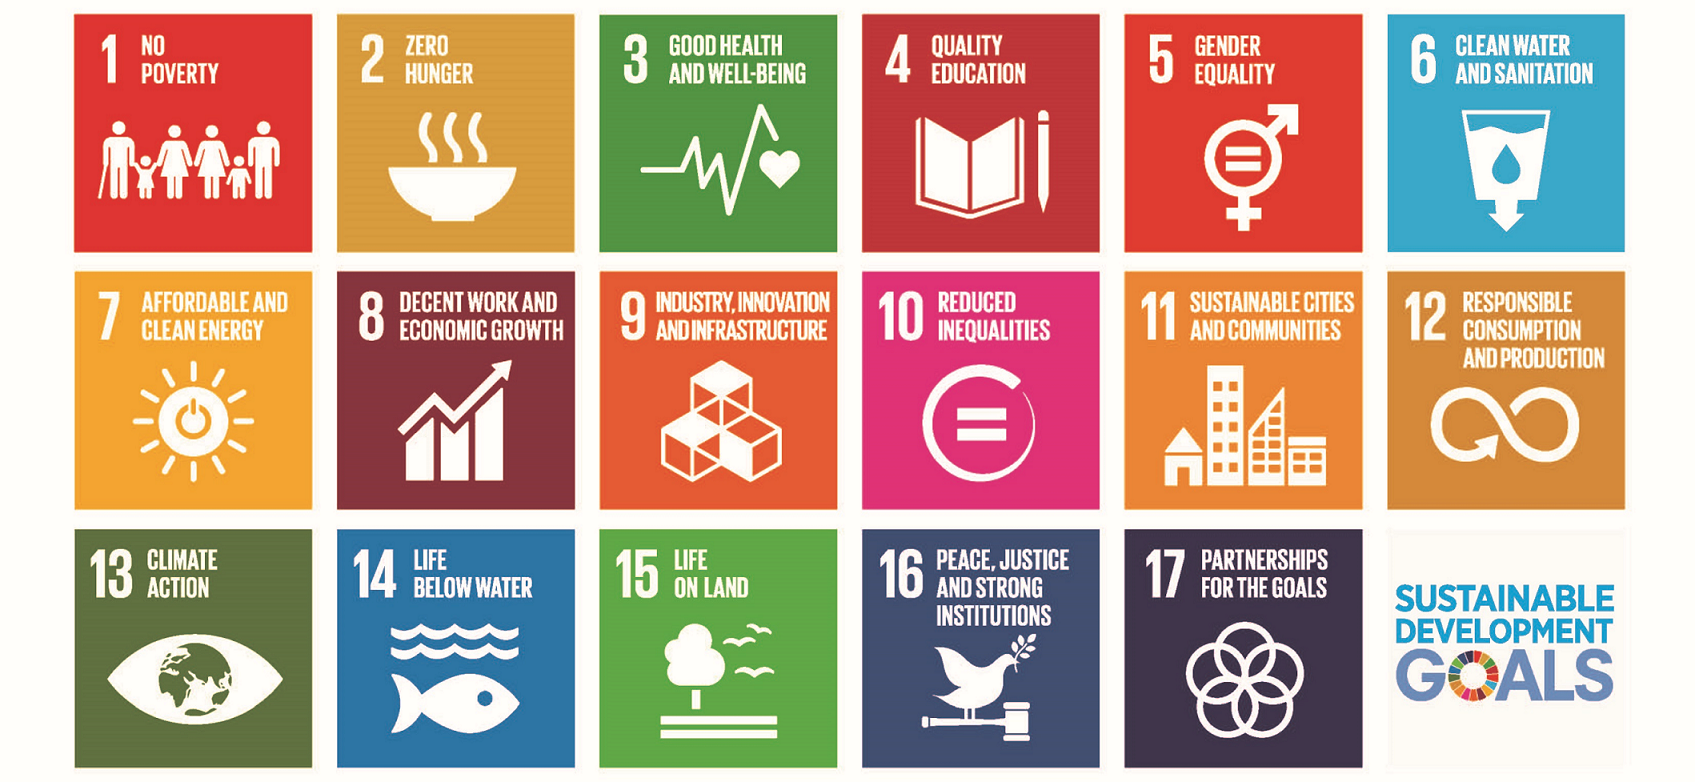 E 2016 SDG Poster all sizes without UN emblem A4 1